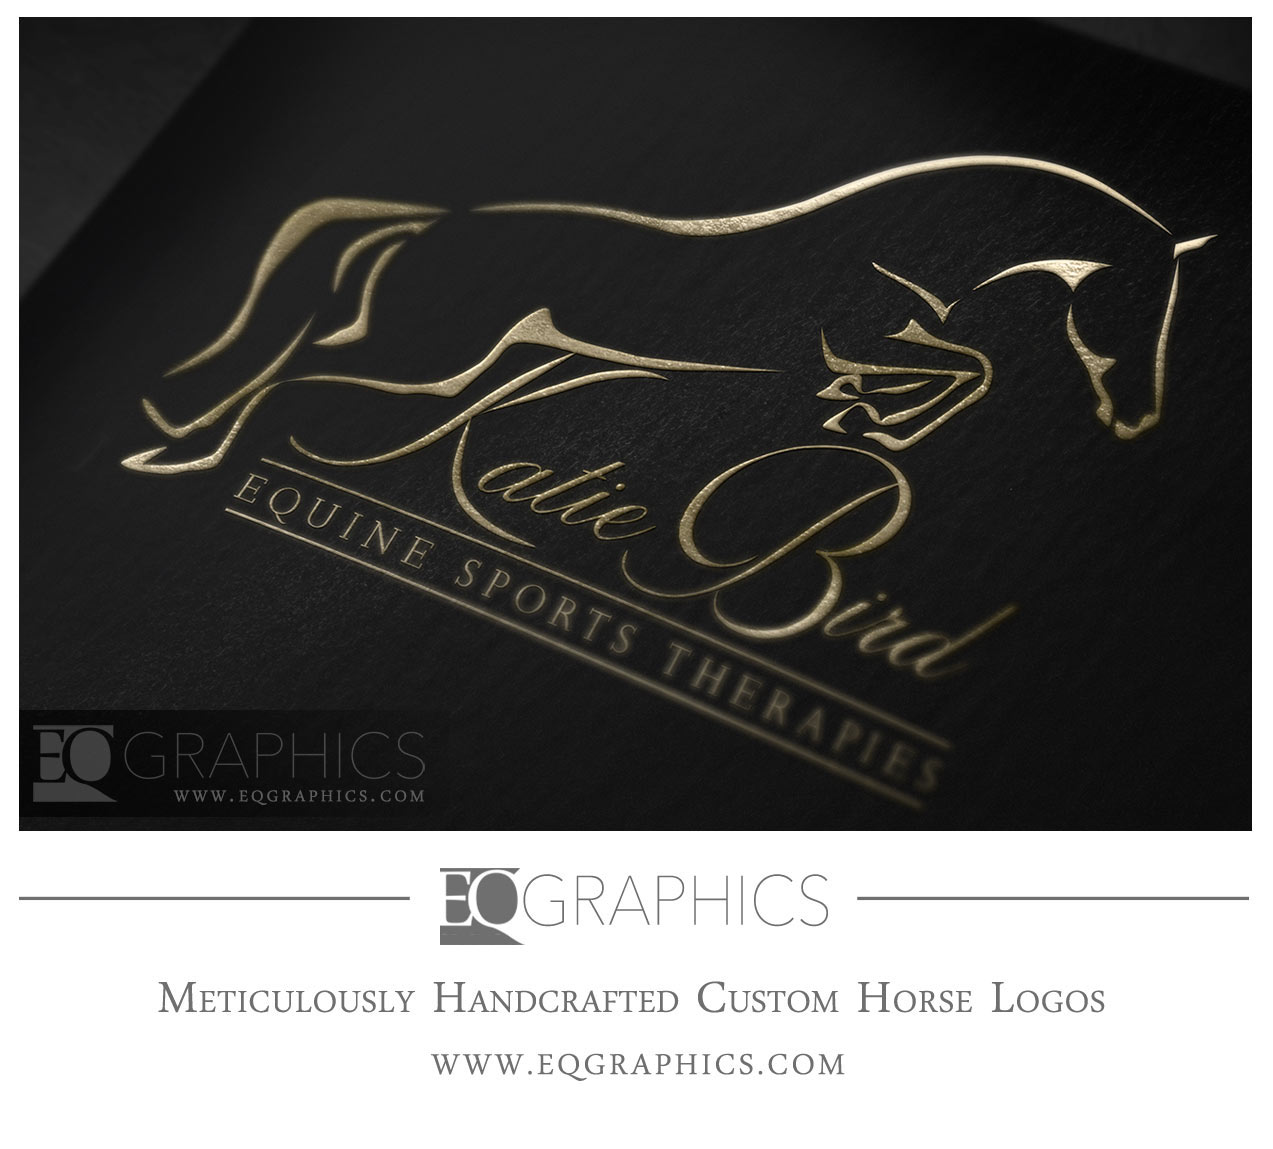 Katie Bird Equine Sports Therapy Logo New Zealand Horse Therapist Logo by EQ Graphics